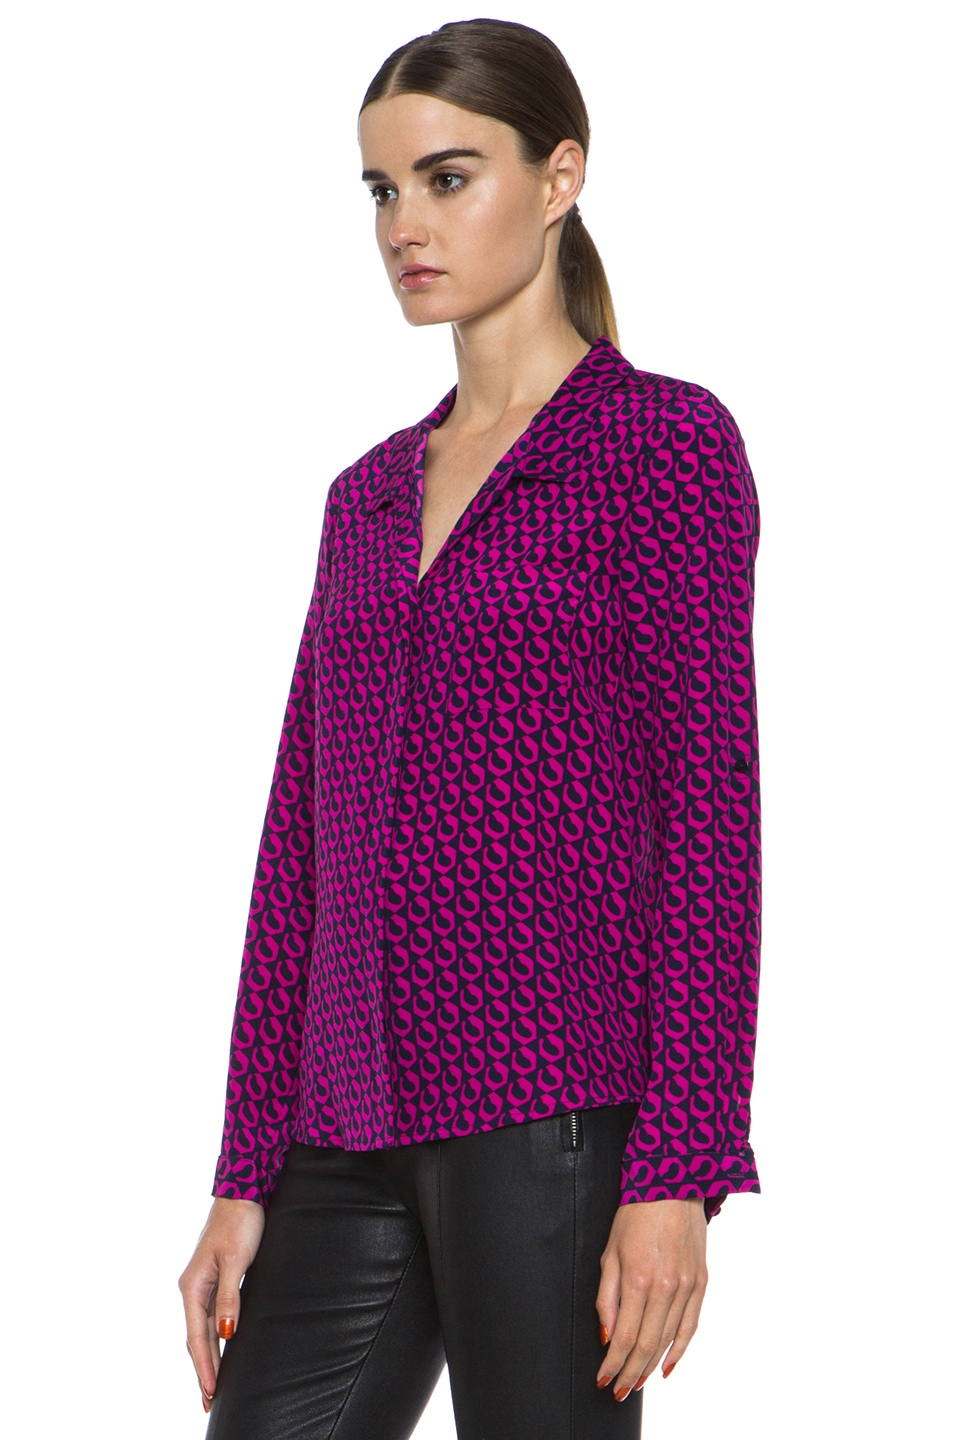 efa9515ea690f2 Image 2 of Diane von Furstenberg Lorelei Print Silk Shirt in Leo Chain Mini  Pink